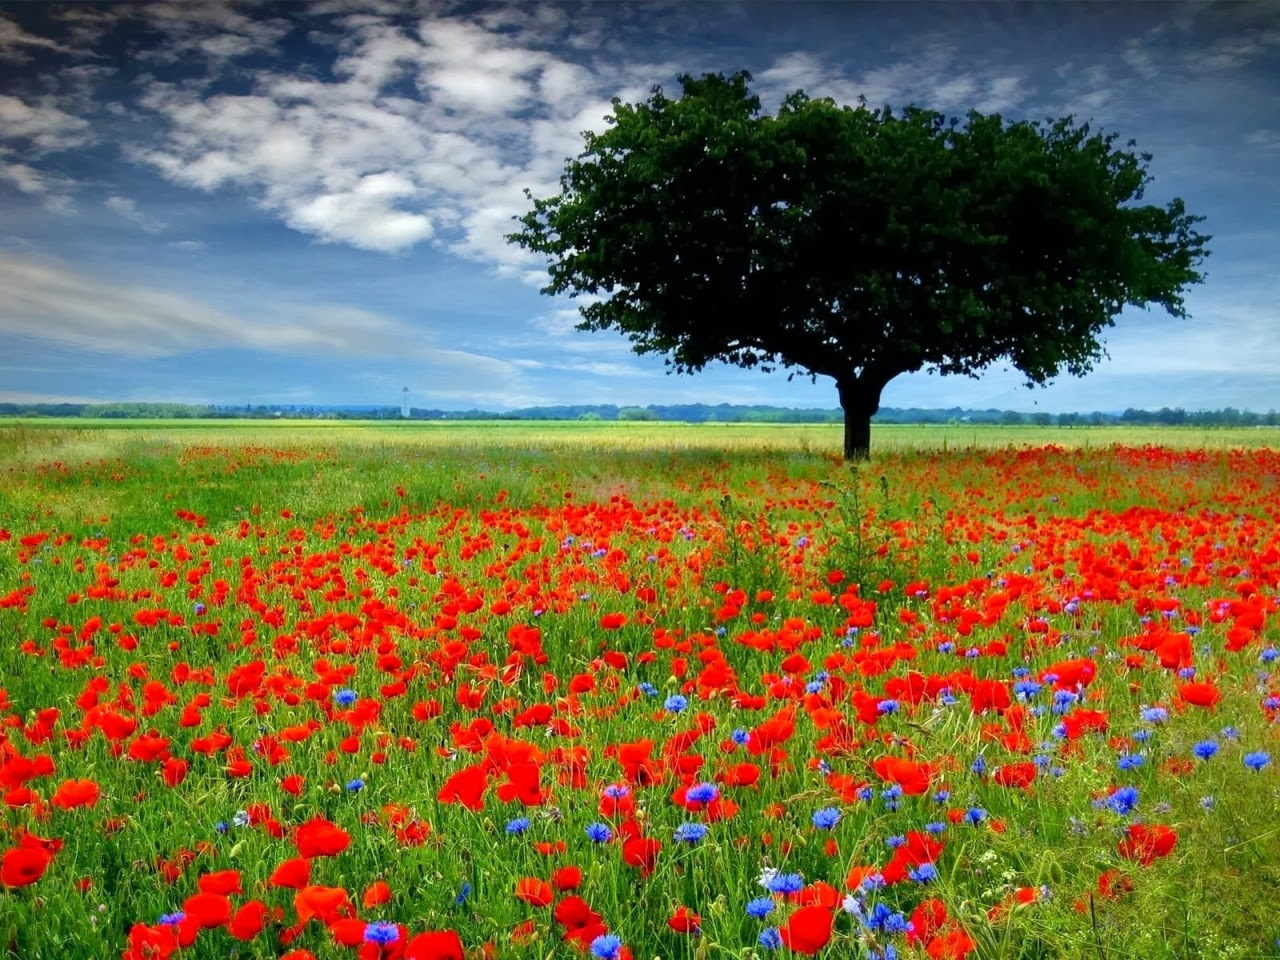 Remembrance day hd wallpapers photos or pics hd wallpapers blog - Poppy wallpaper ...